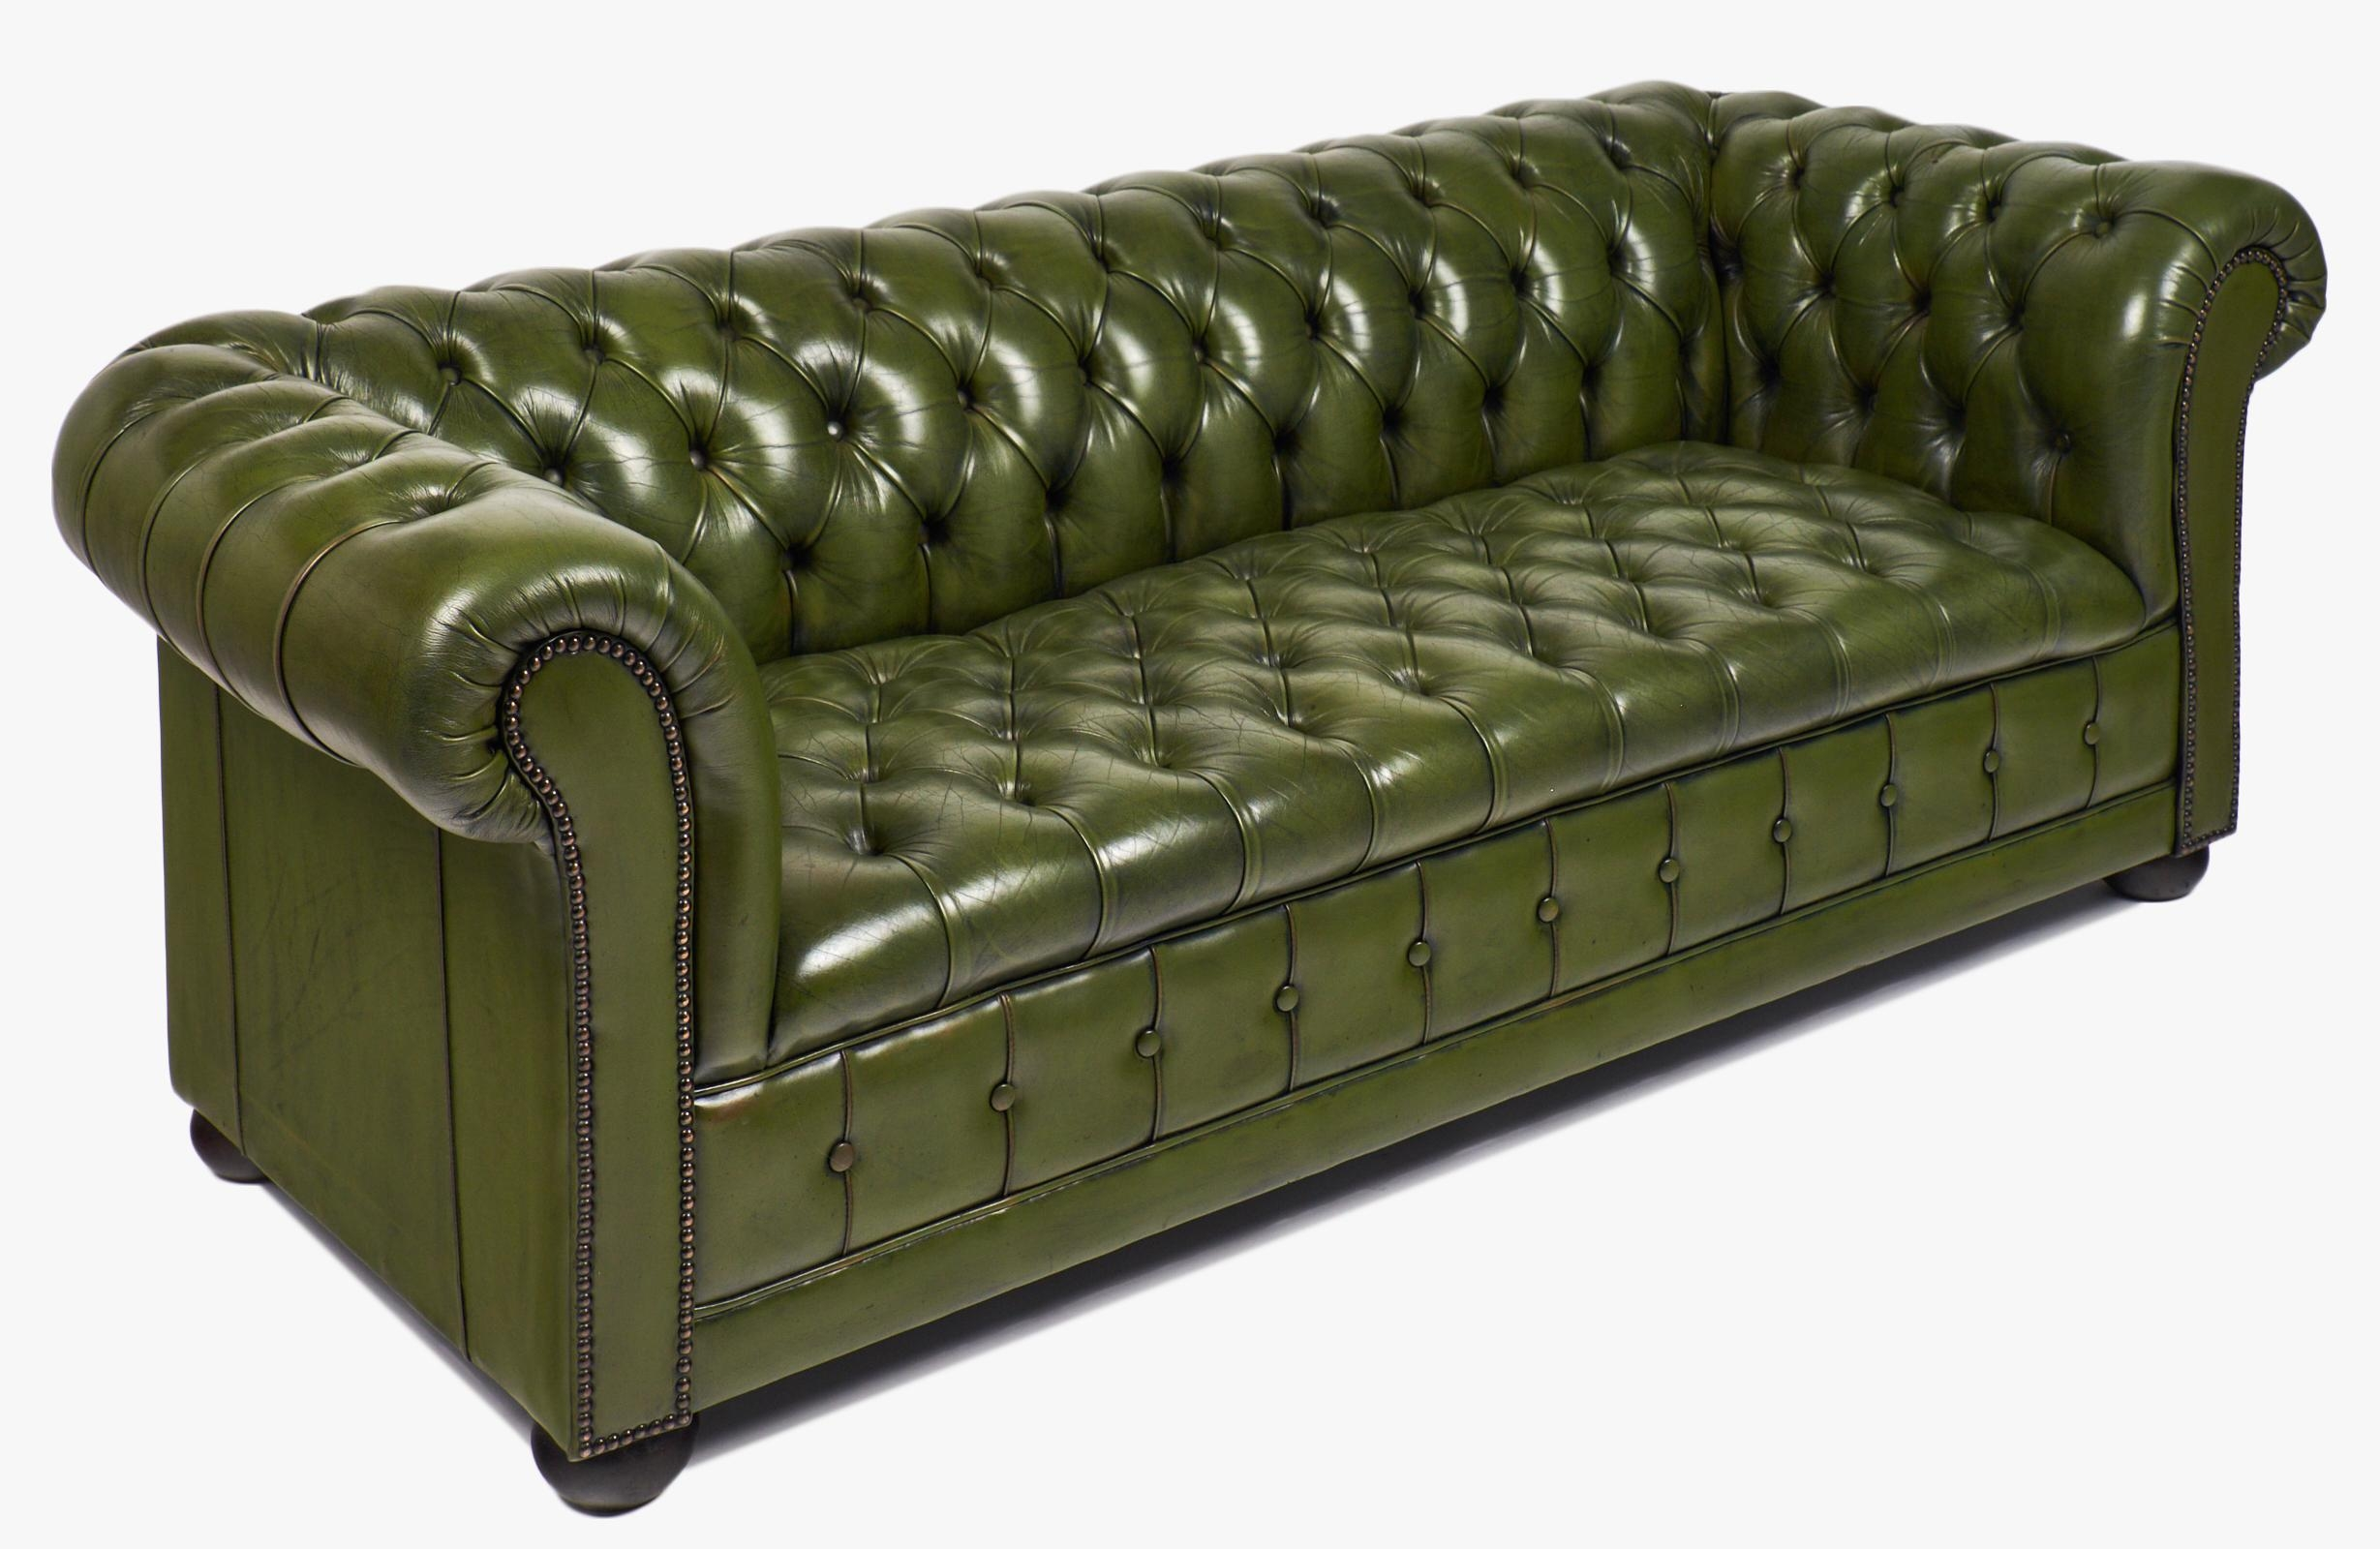 Vintage Green Leather Chesterfield Sofa - Jean Marc Fray throughout Vintage Chesterfield Sofas